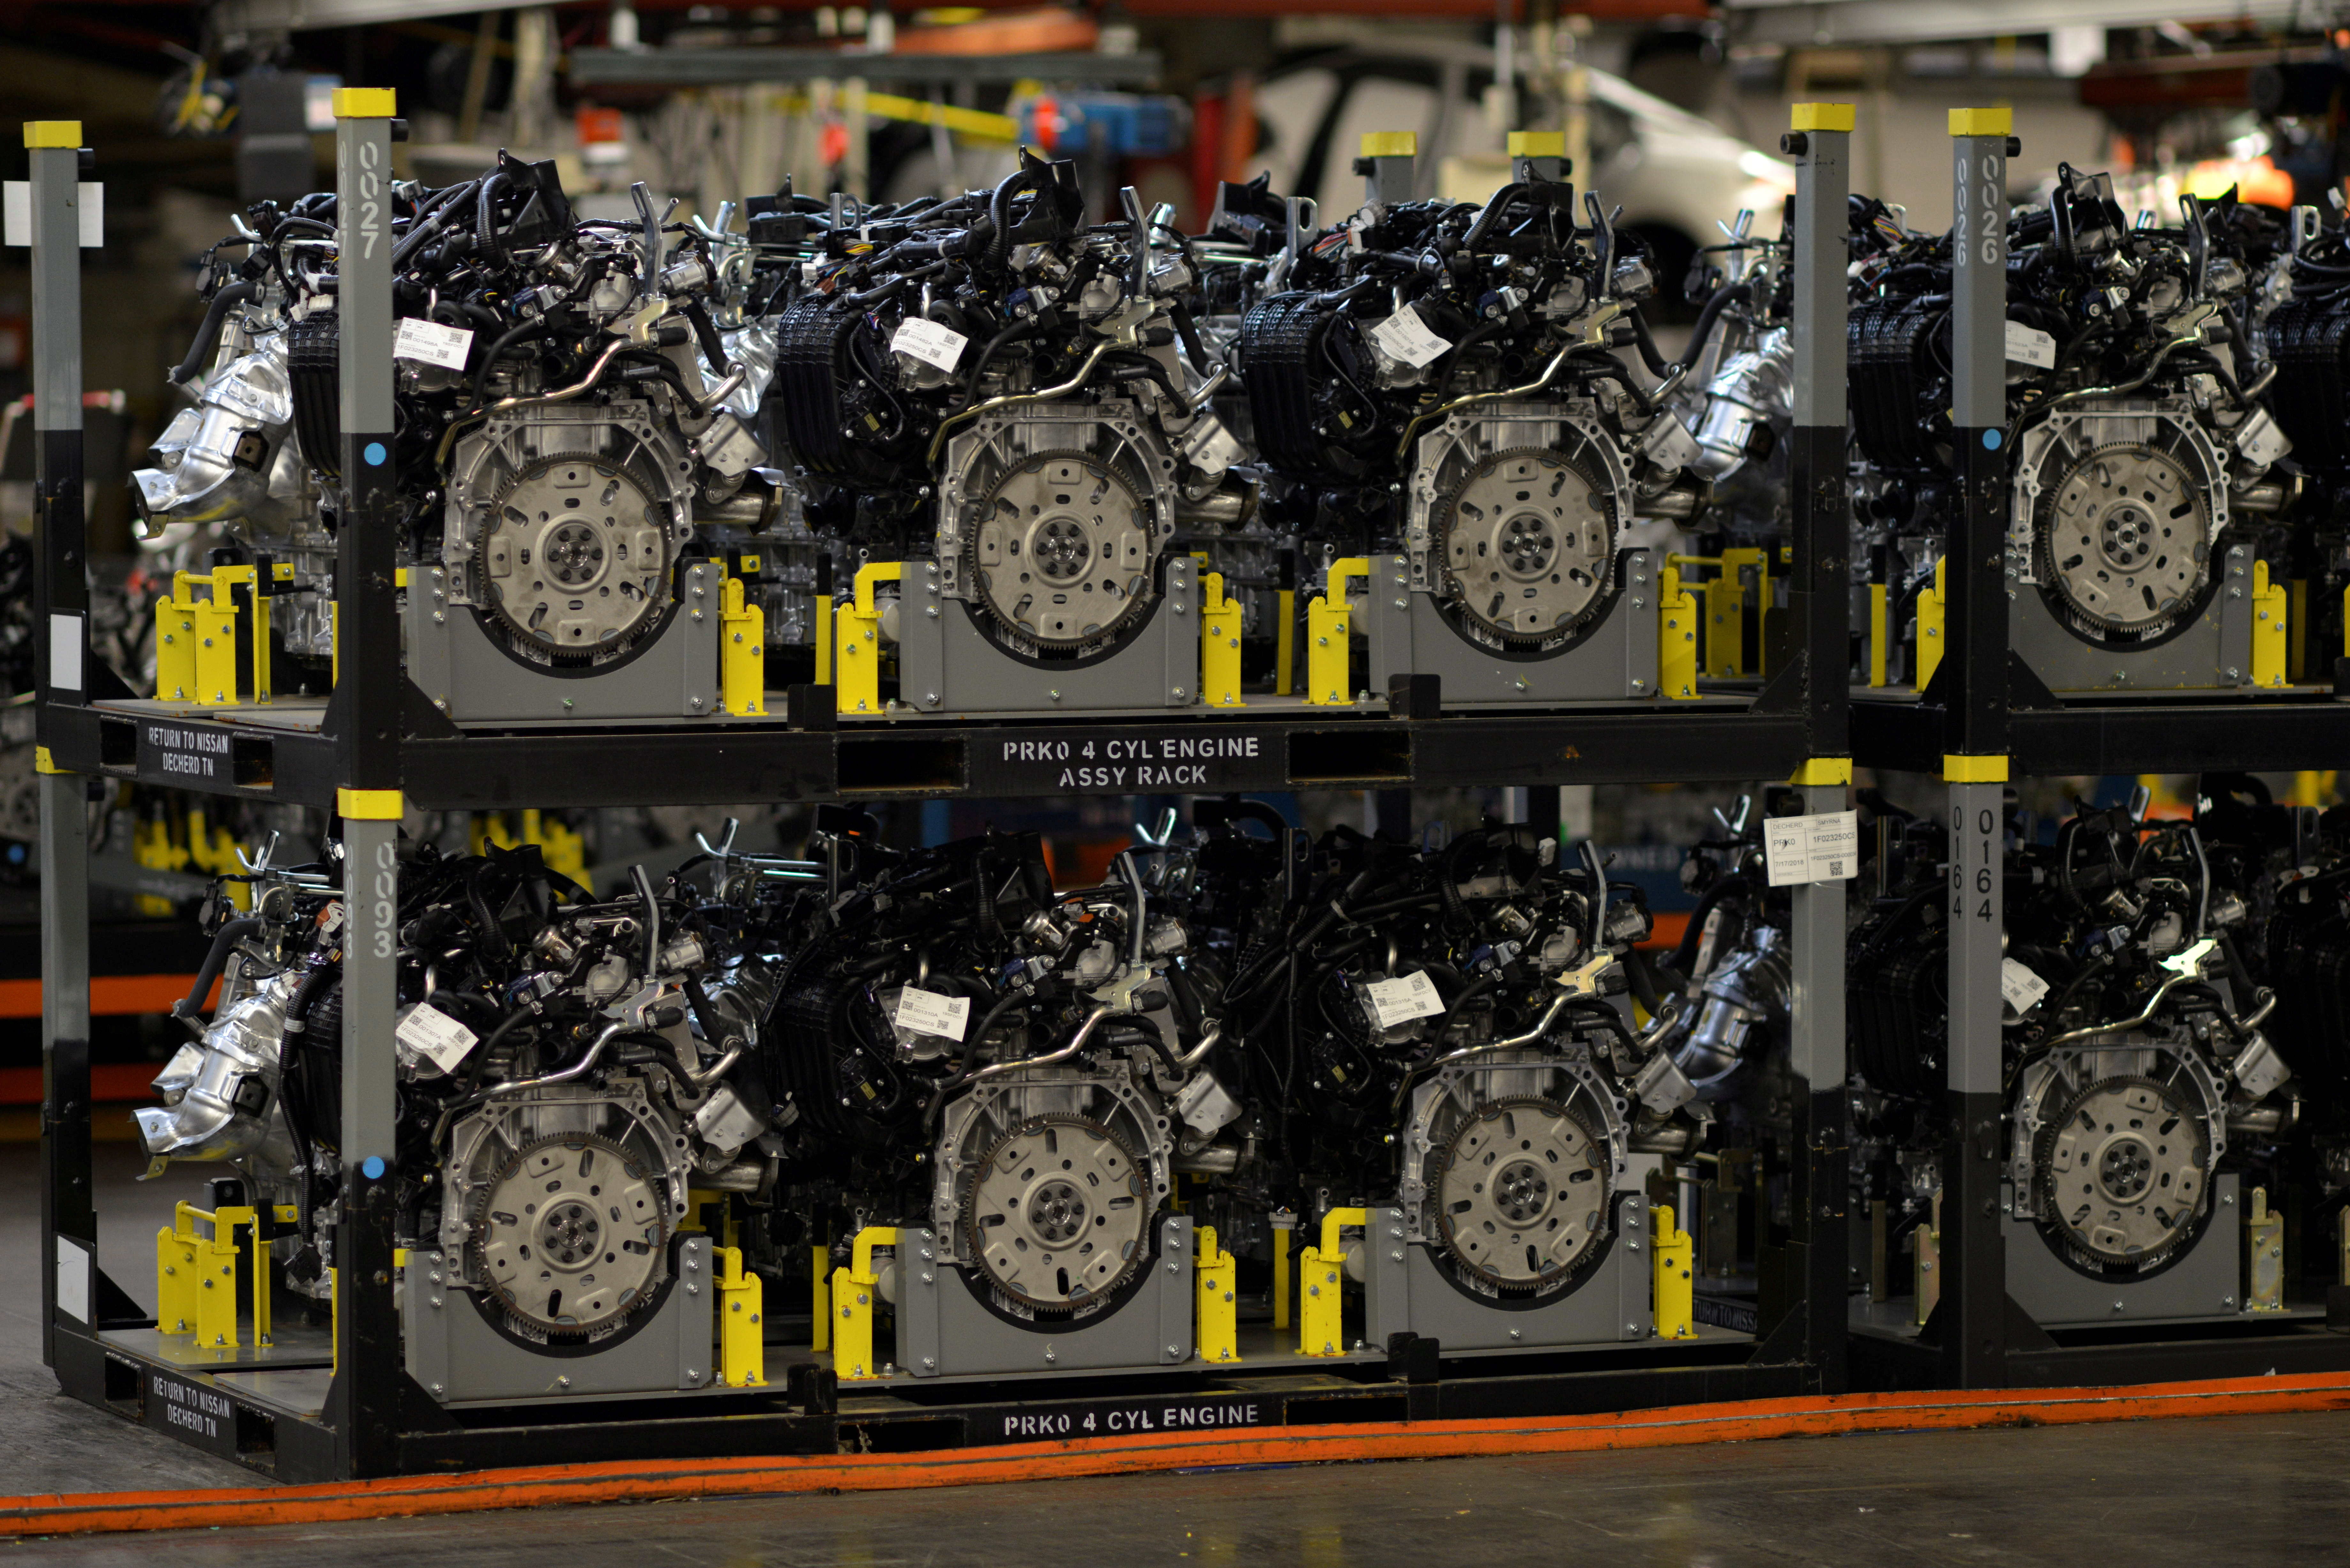 Pre assembled engines are stacked and ready for installation at Nissan Motor Co's automobile manufacturing plant in Smyrna, Tennessee, U.S., August 23, 2018. REUTERS/William DeShazer/File Photo